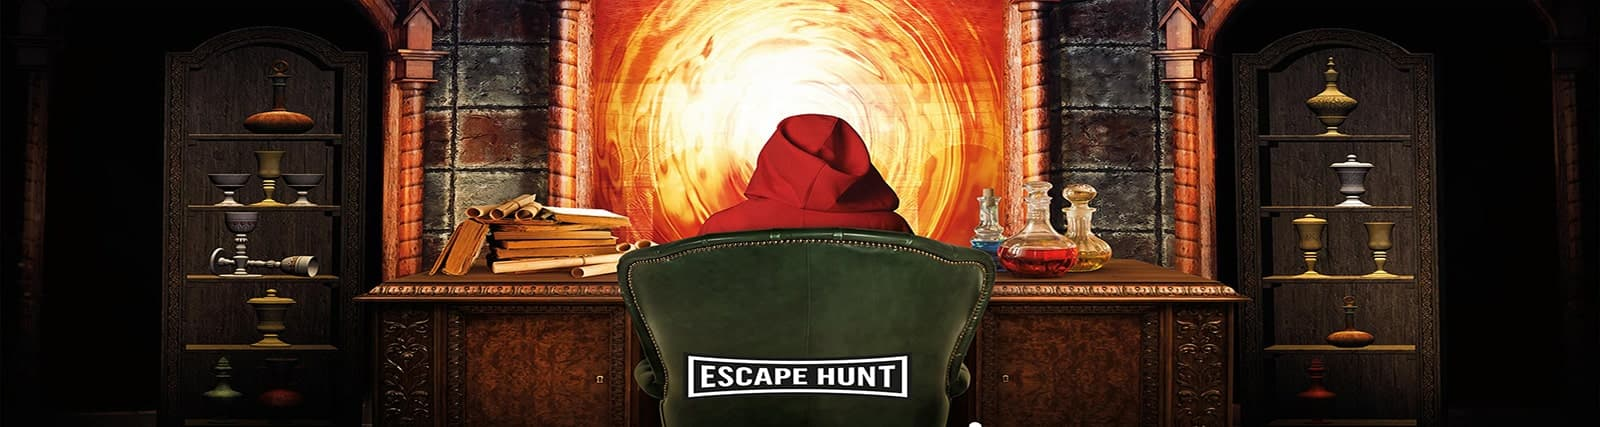 escape hunt iconic